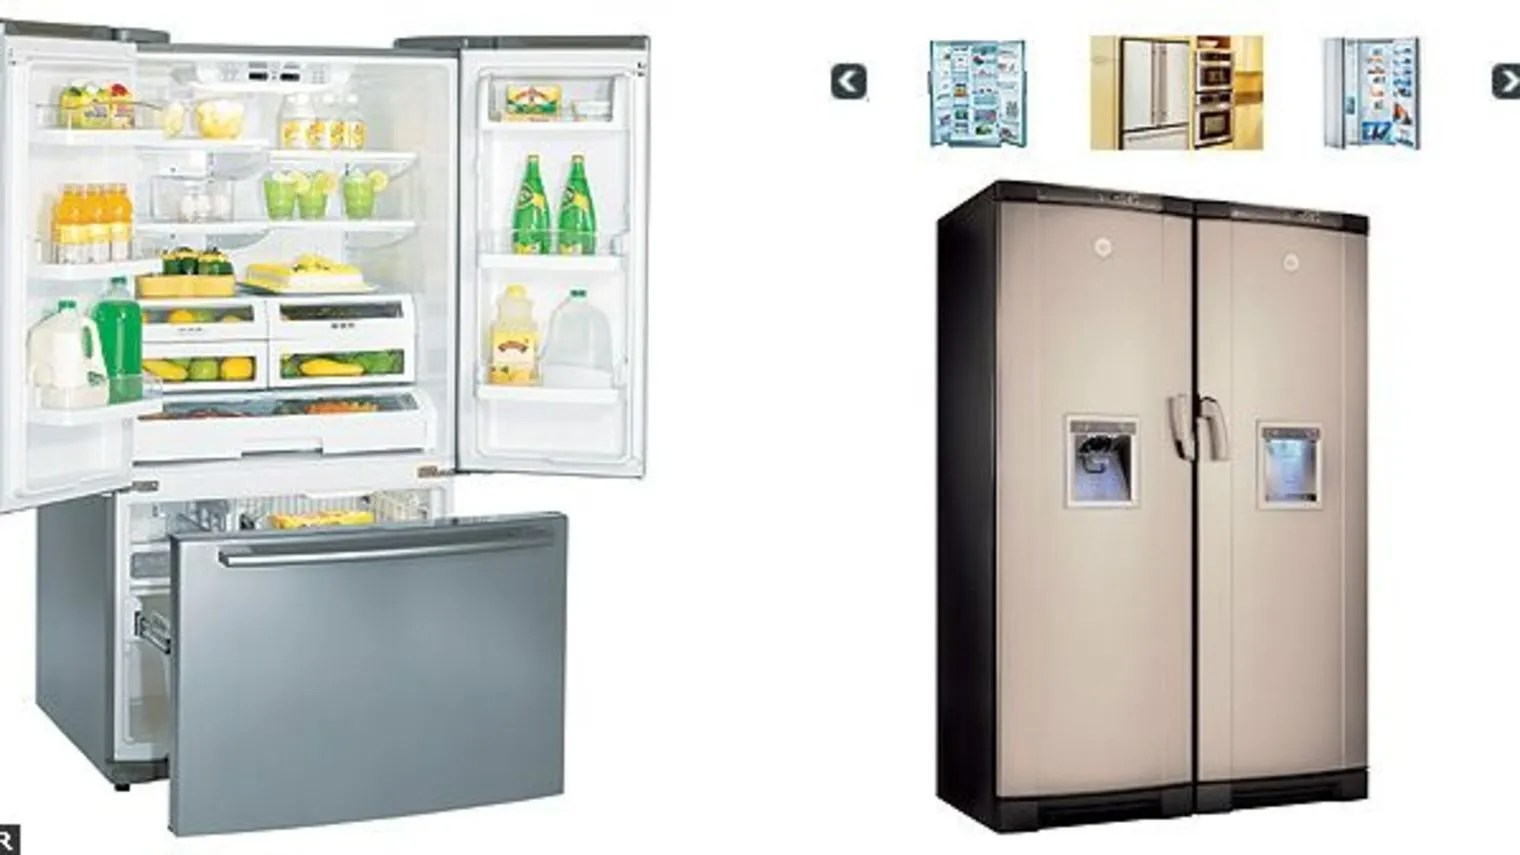 Frigidaire Grande Largeur Refrigerateur R Frig Rateur Am Ricain Samsung Youtube